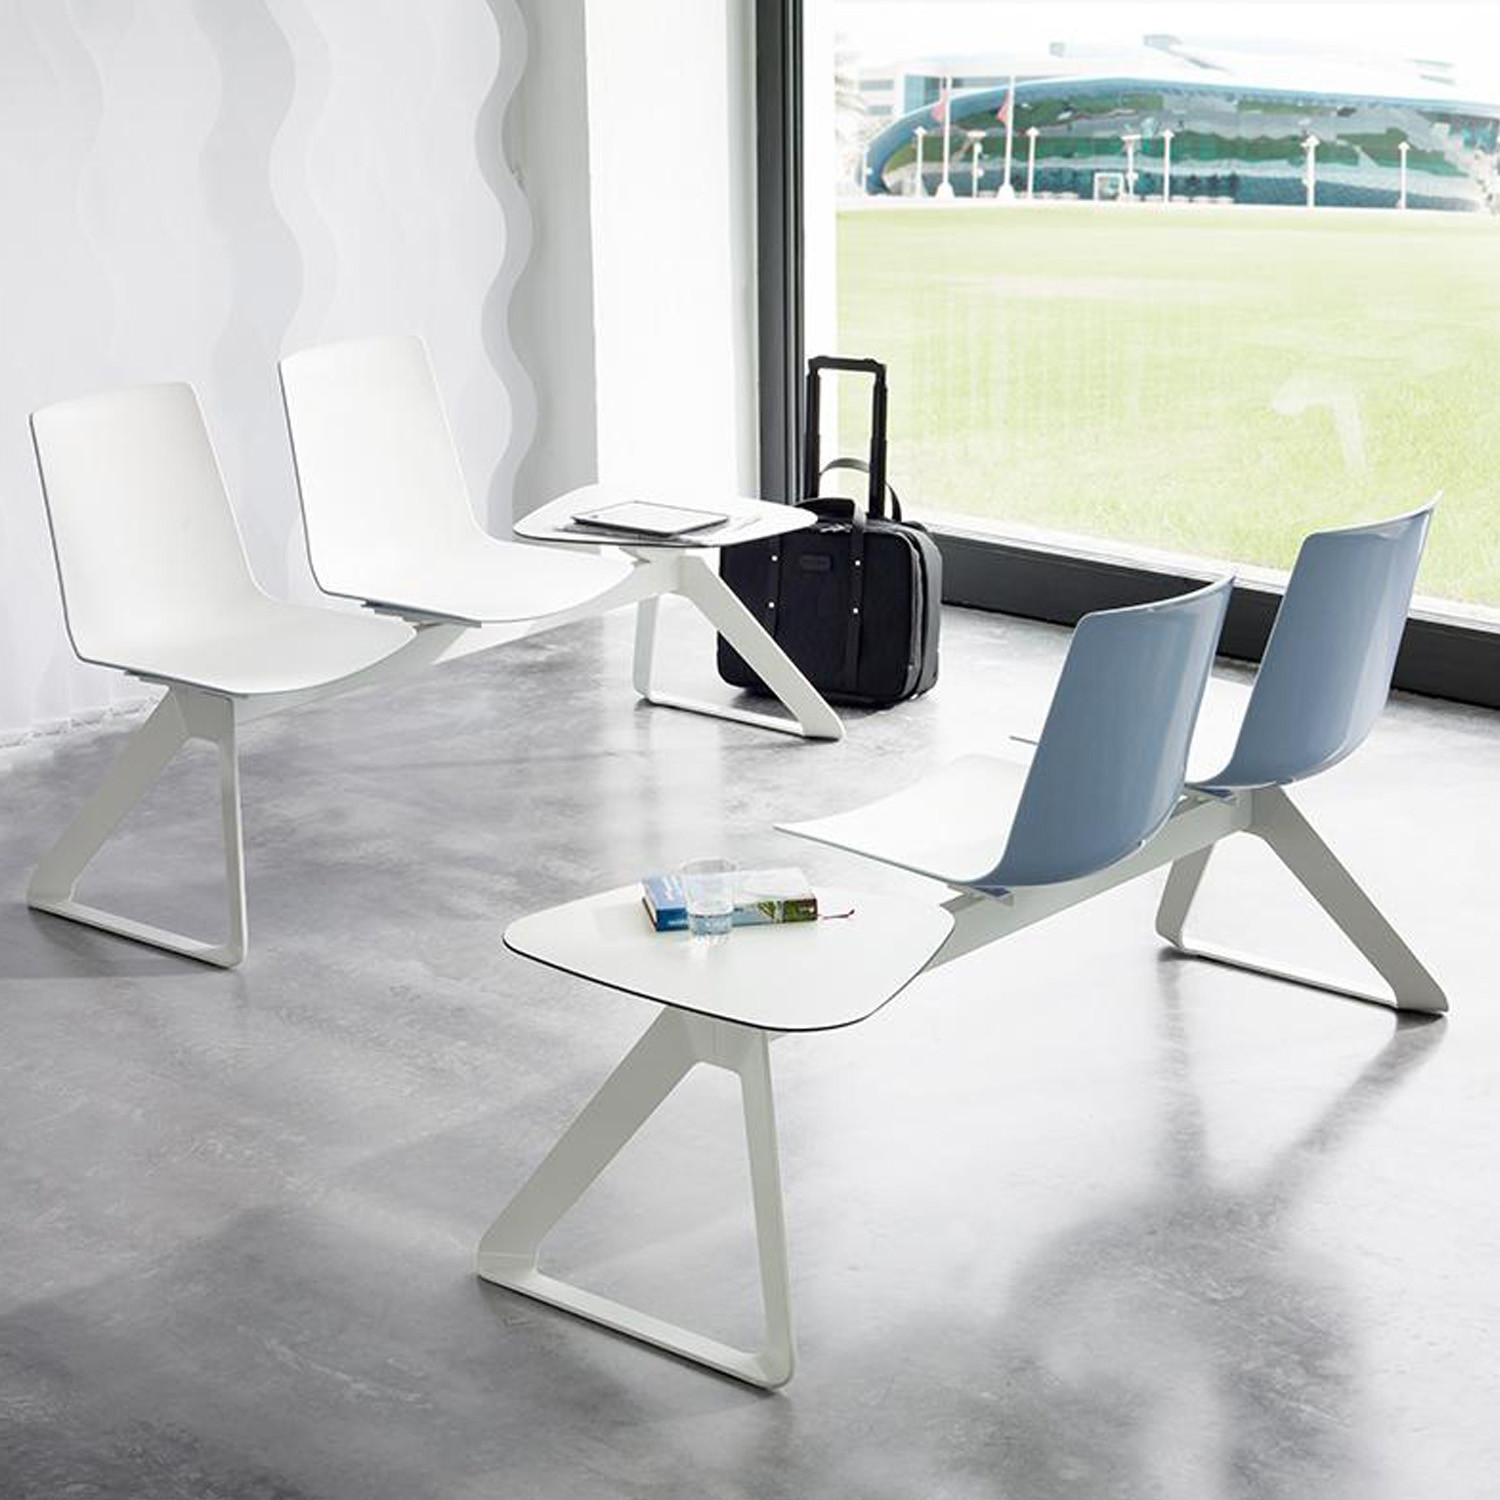 Nooi Beam Seating by Wiesner Hager